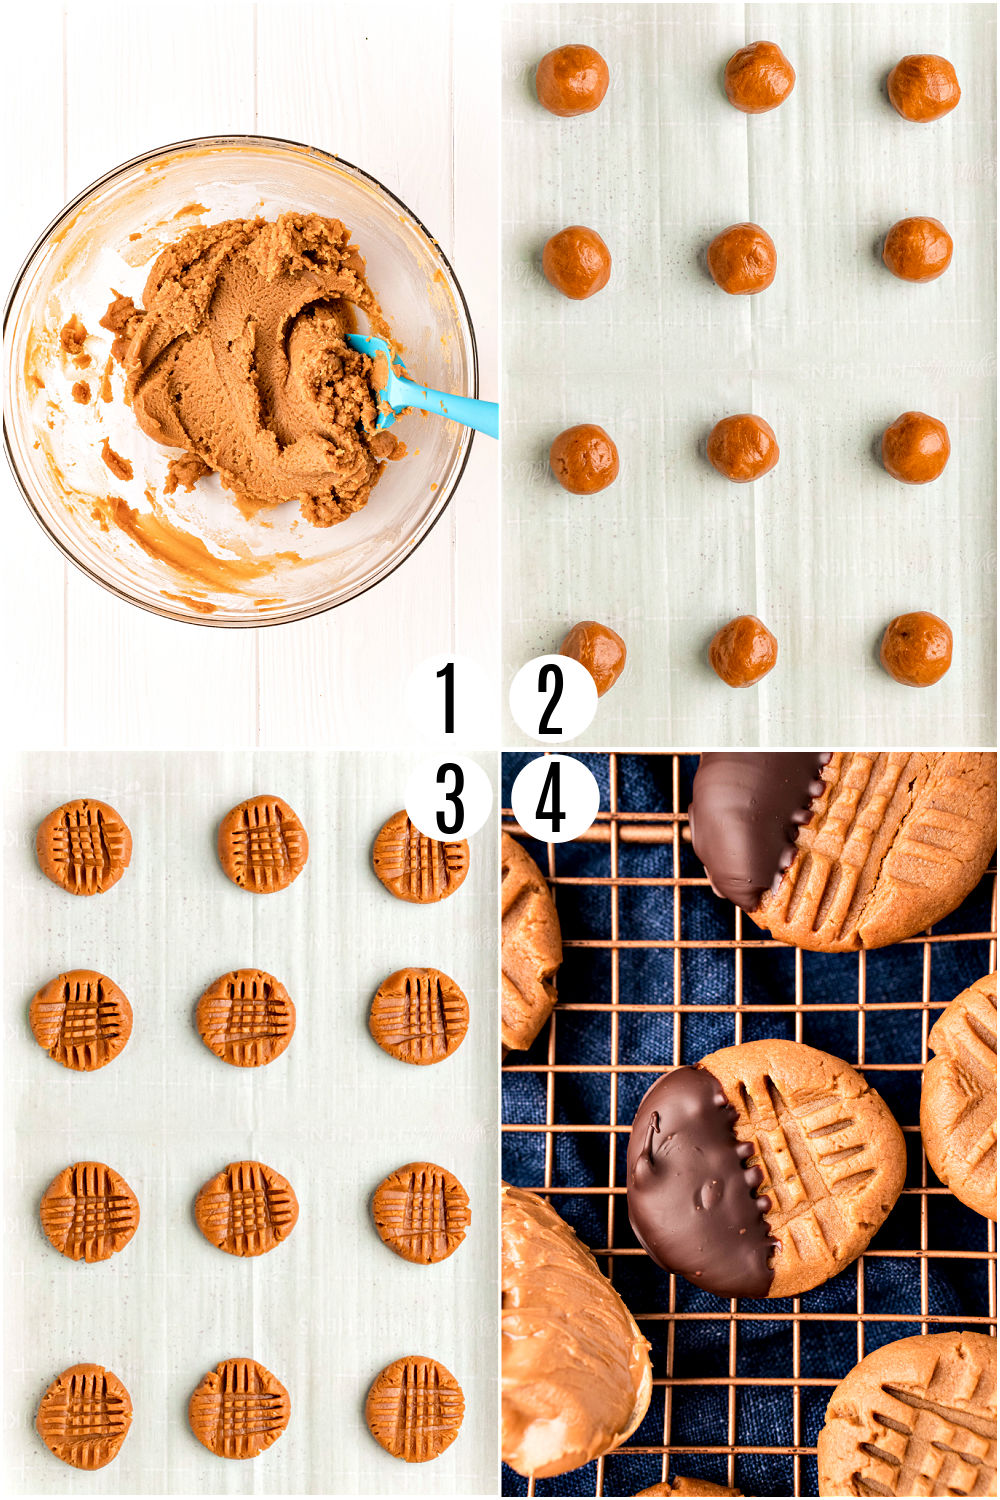 Step by step photos showing how to make keto peanut butter cookies.